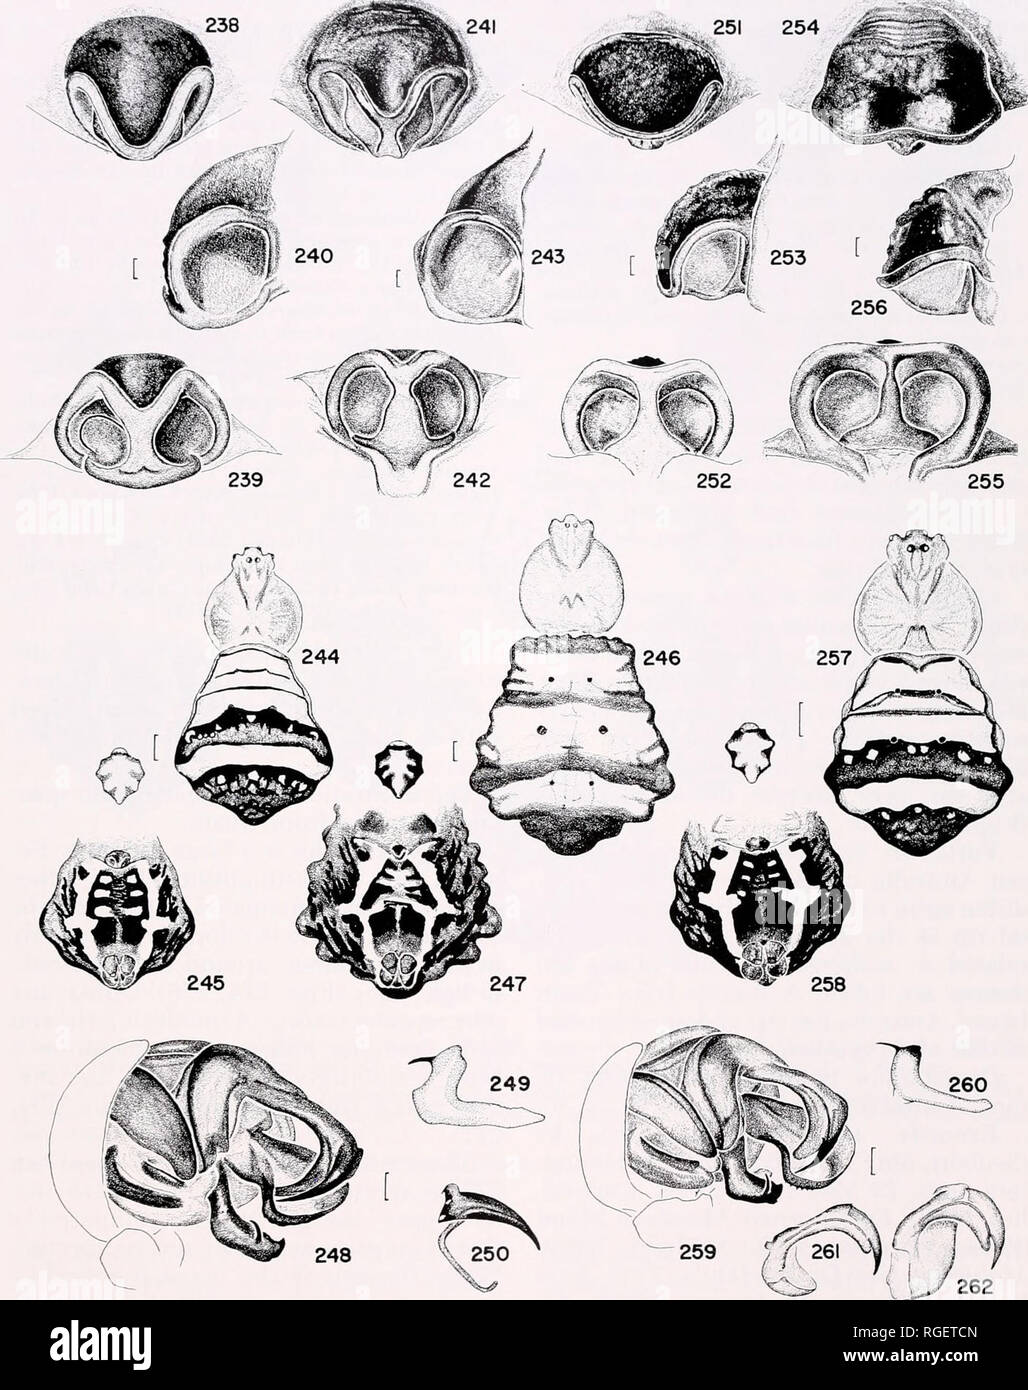 """. Bulletin of the Museum of Comparative Zoology at Harvard College. Zoology. Western Pacific Argiopinae • Levi 307. terior. 253, 256. Epigynum, lateral. 251-253. (Salangor, Malaysia). 254-256. (Siberut, Sumatra). 257. Carapace and abdomen. 258. Sternum and abdomen. 259. Left male palpus, mesal. 260. Median apophysis from """"below."""" 261, 262. Broken left embolus tip from an epigynum (at different angles). Scale lines. 0.1 mm, except Figures 244-247, 257, 258, 1.0 mm.. Please note that these images are extracted from scanned page images that may have been digitally enhanced for readabili - Stock Image"""